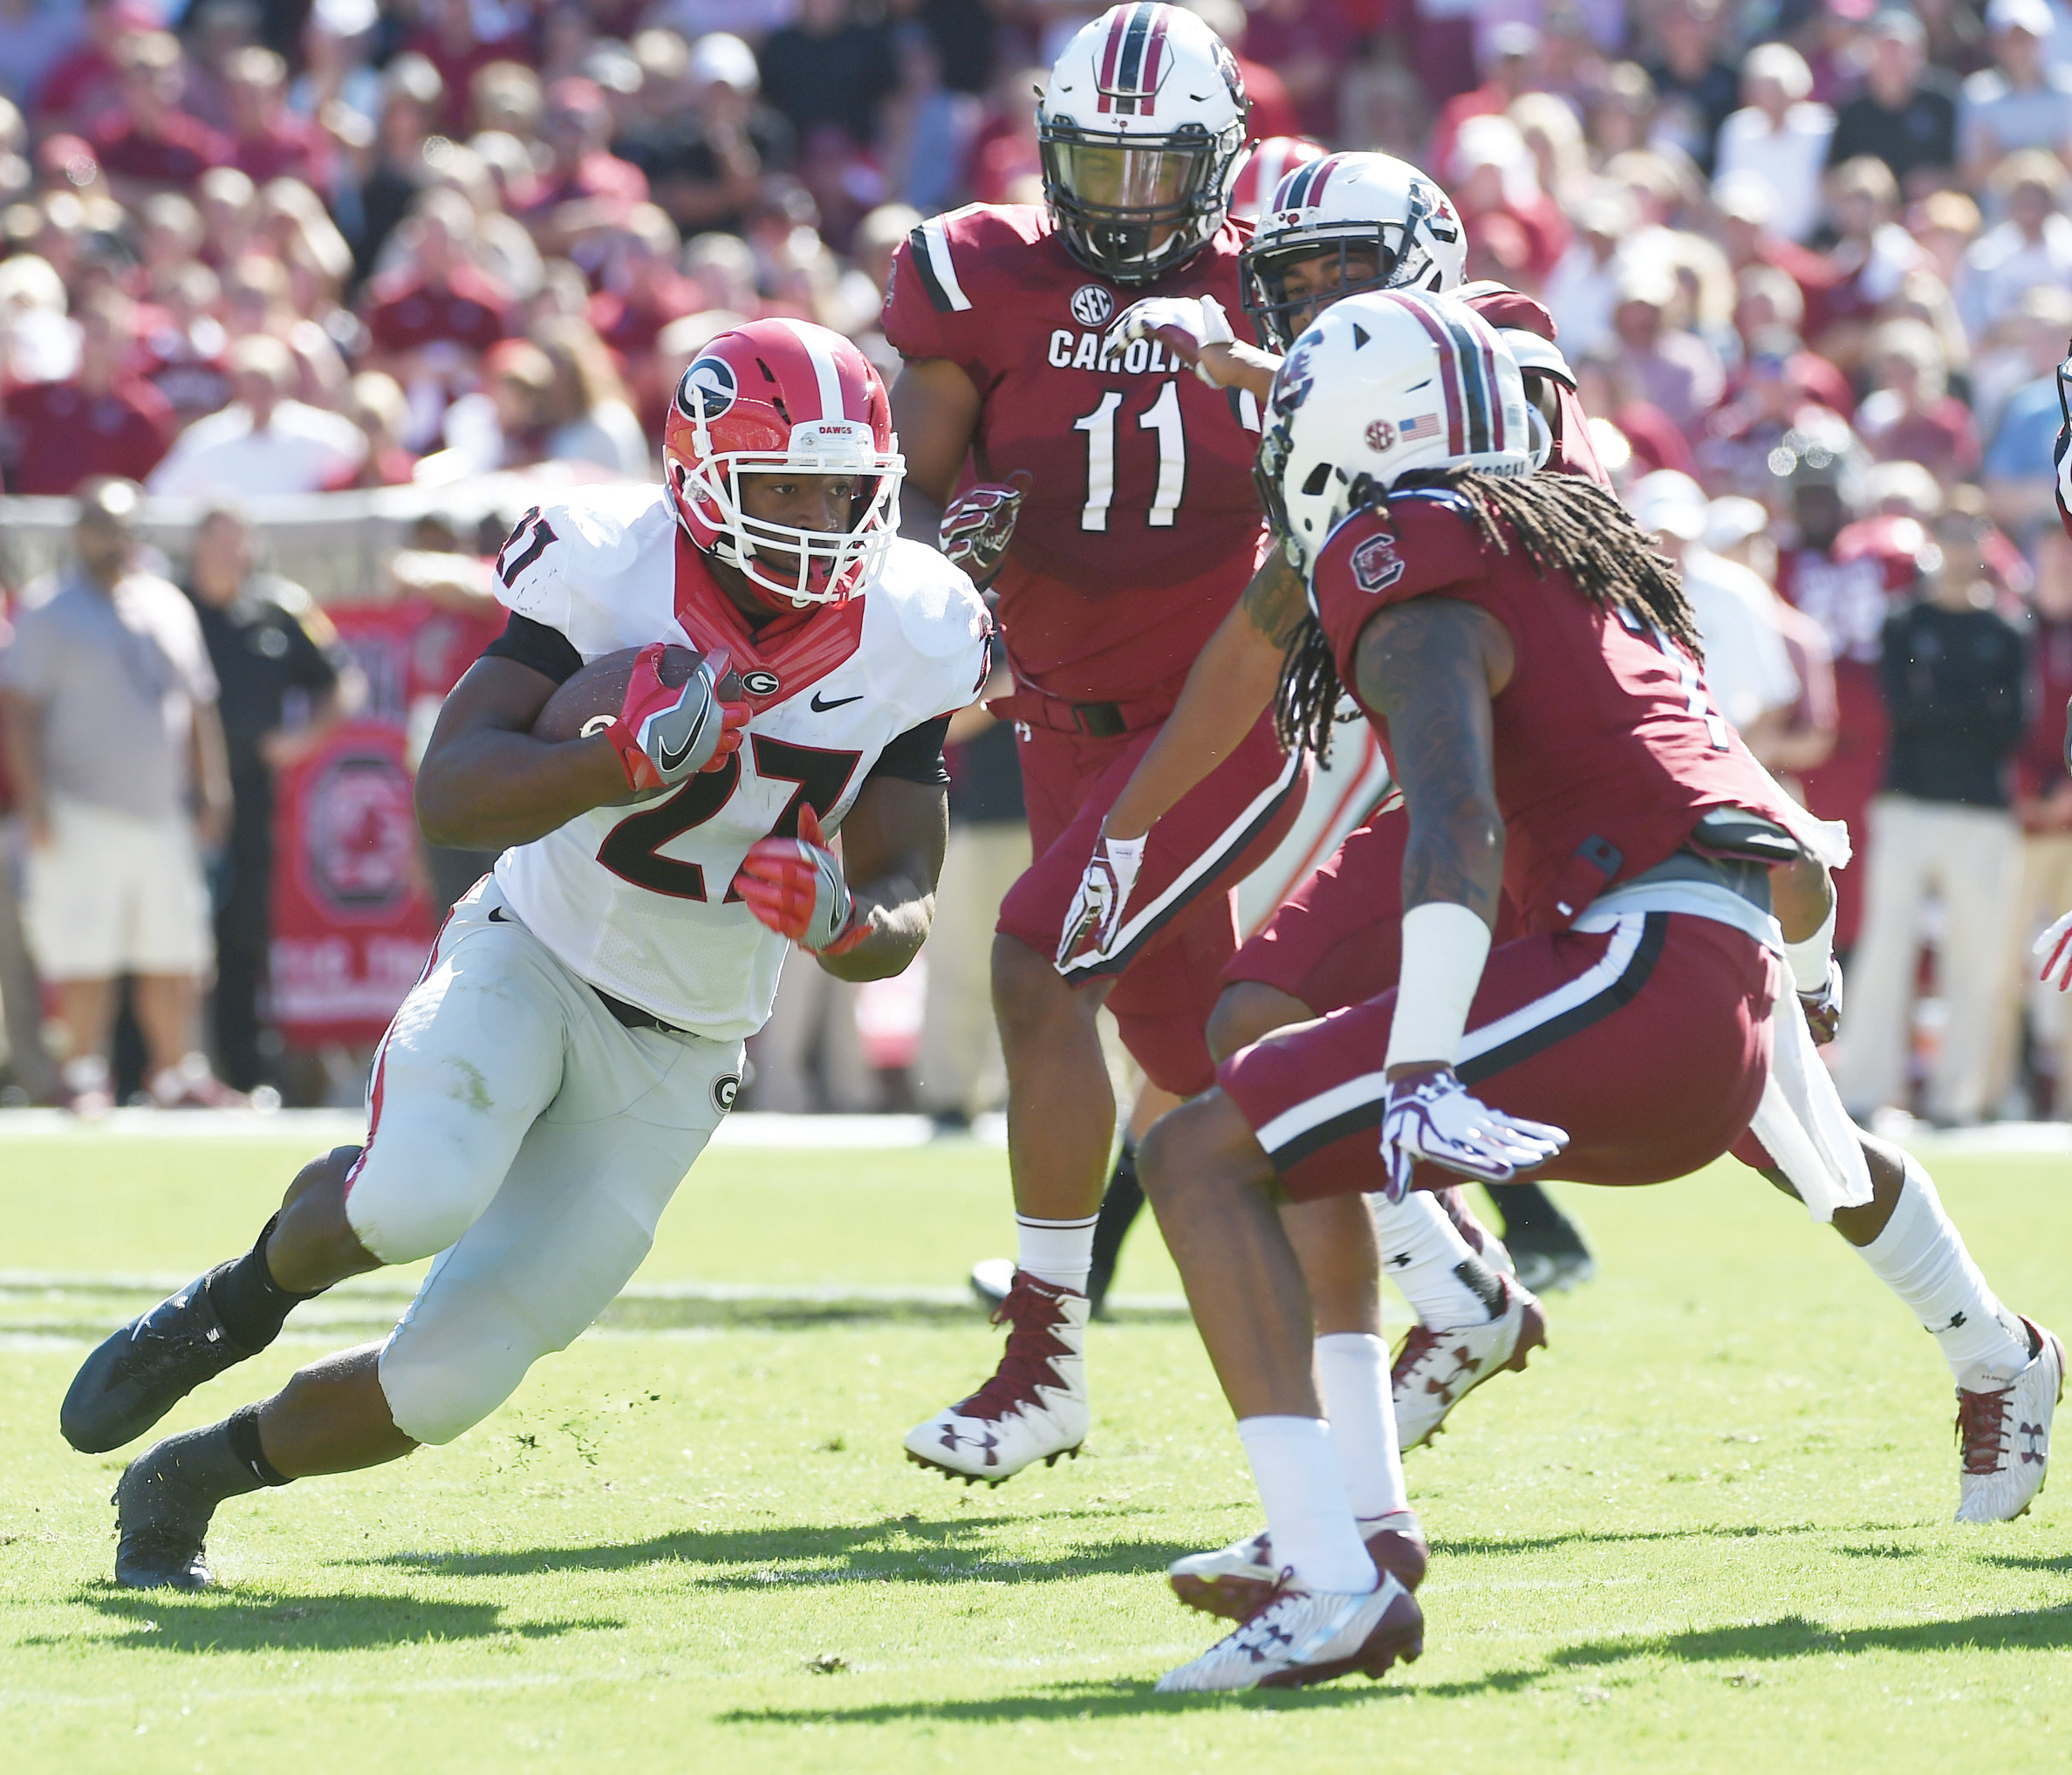 South Carolina's defense was not as stout last season against the likes of Georgia running back Nick Chubb (27) or many other big backs. Head coach Will Muschamp and the Gamecocks are looking to change that this year as well as improving on their own running game as well.